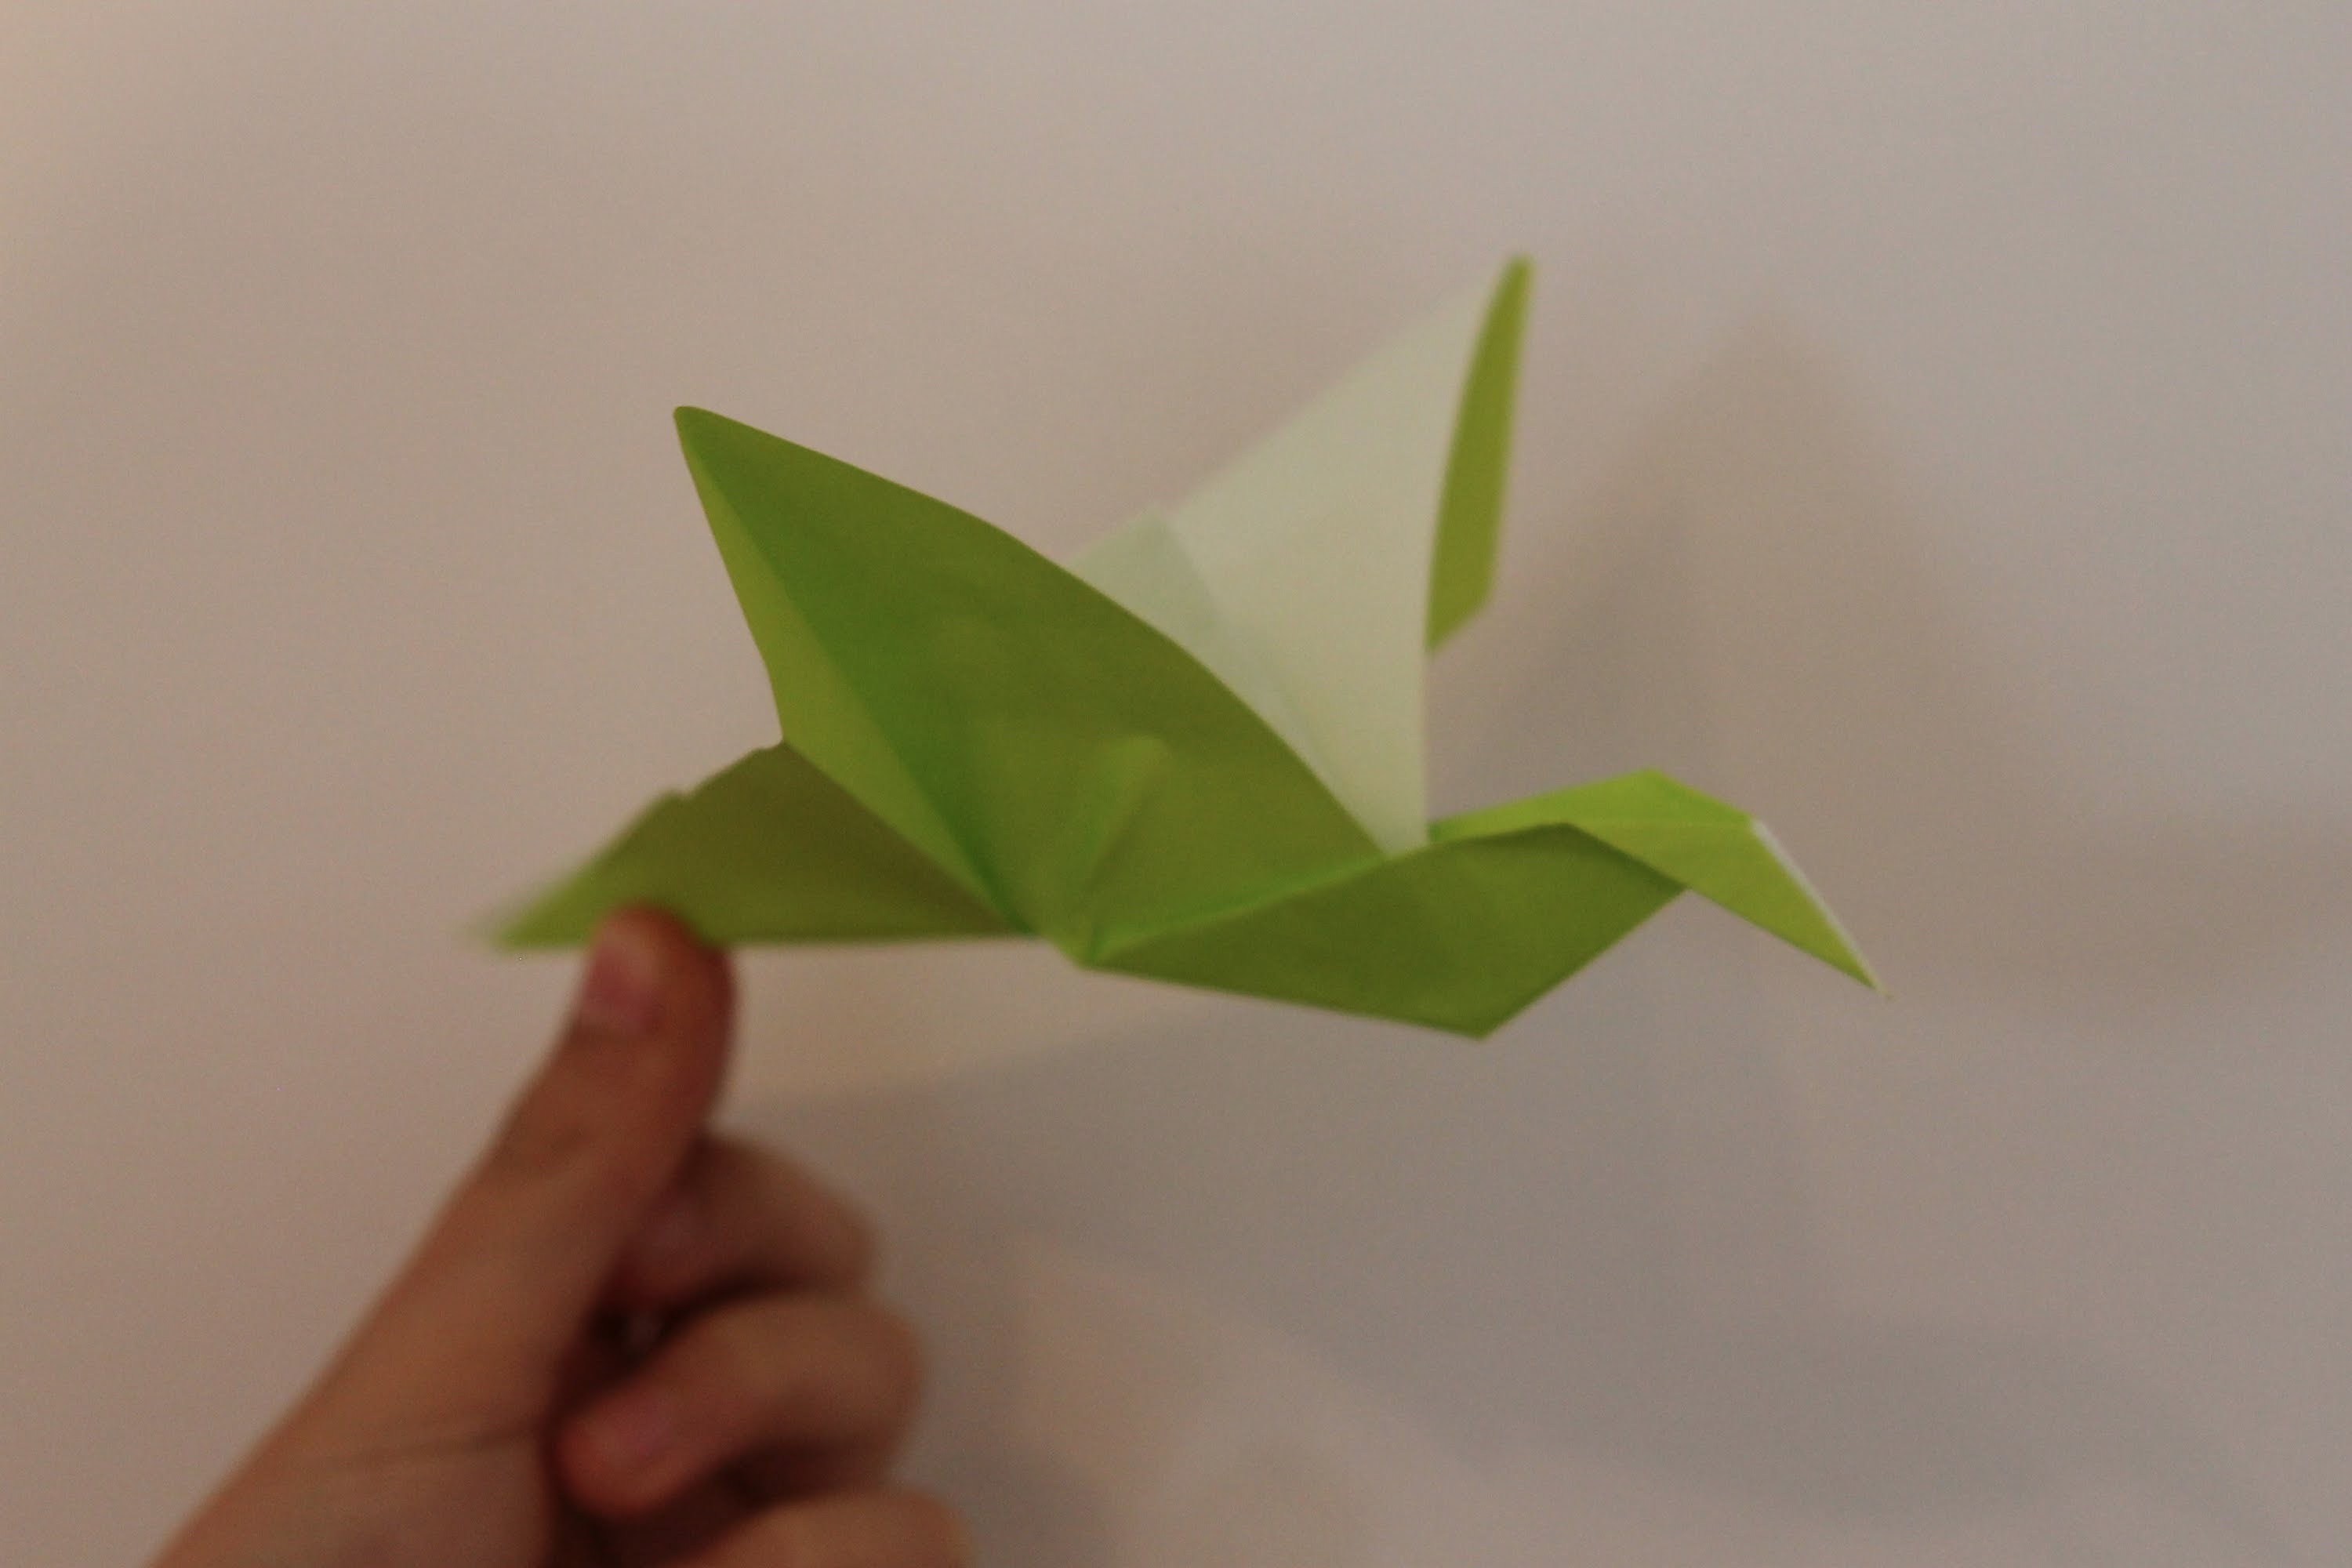 Origami flapping bird by Paul Jackson